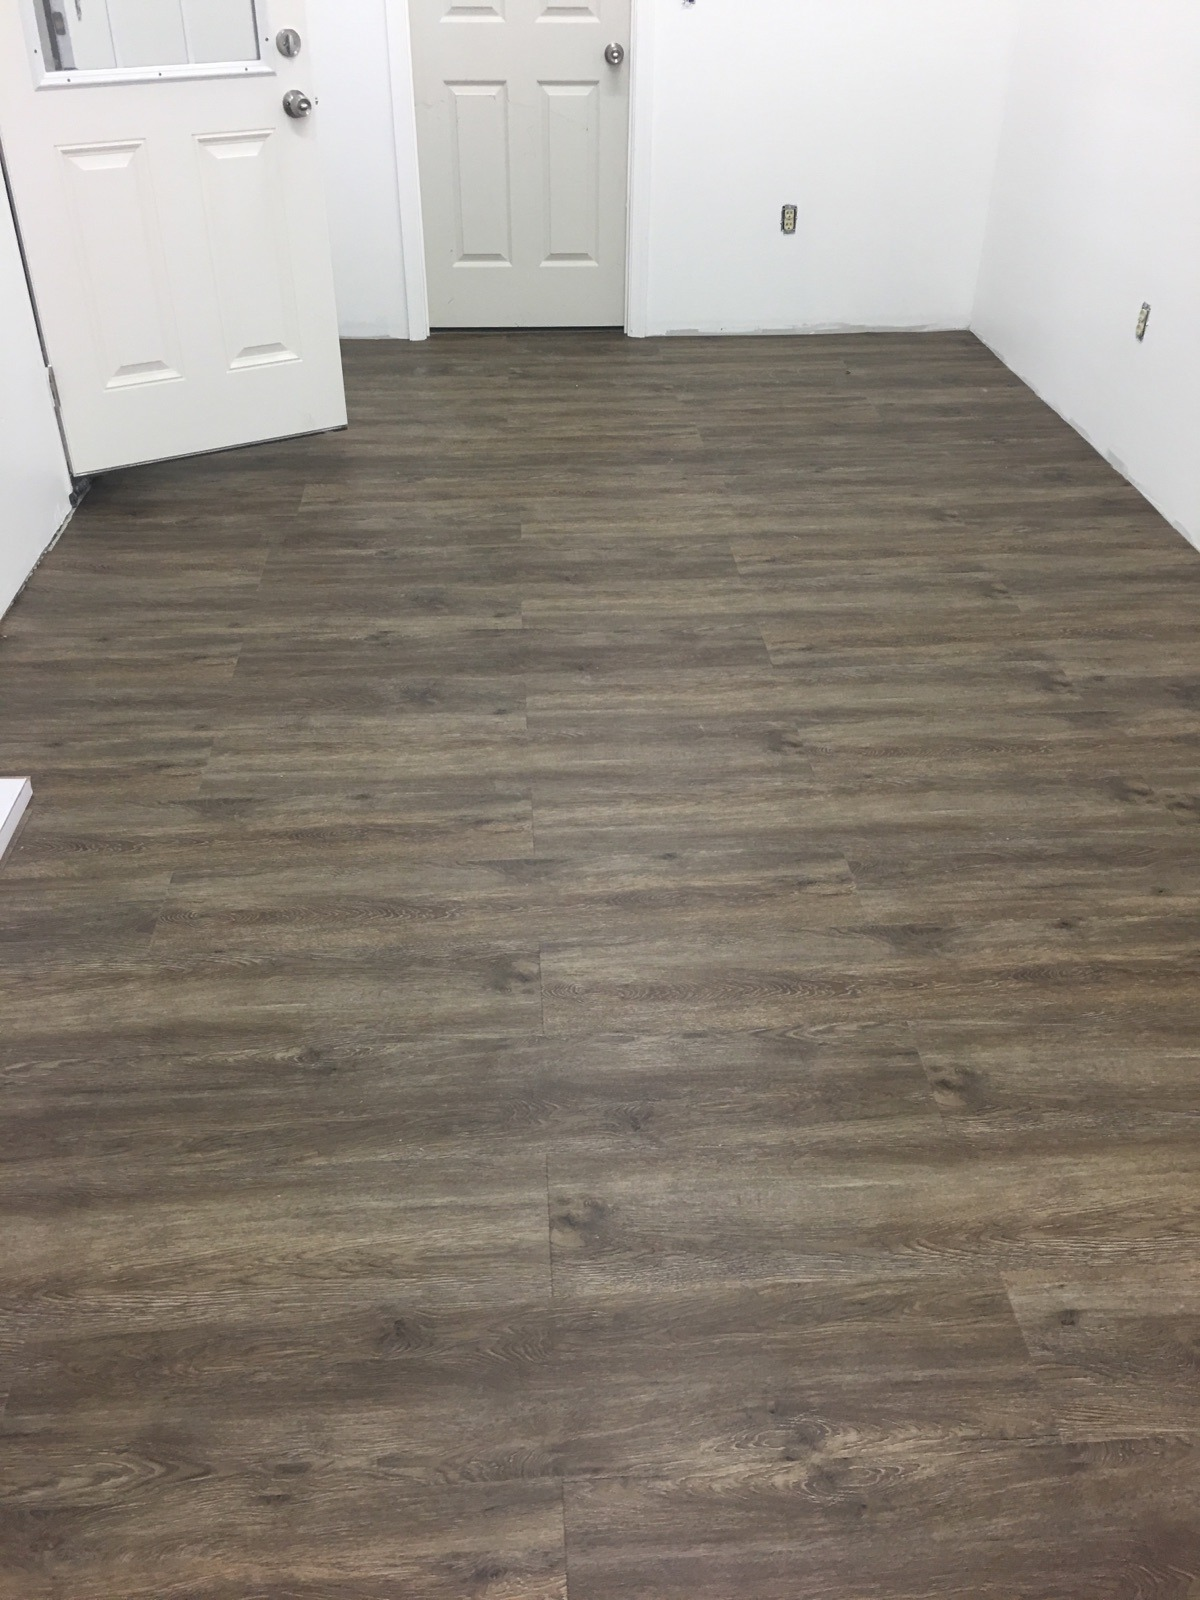 maryland flooring company shore side 021